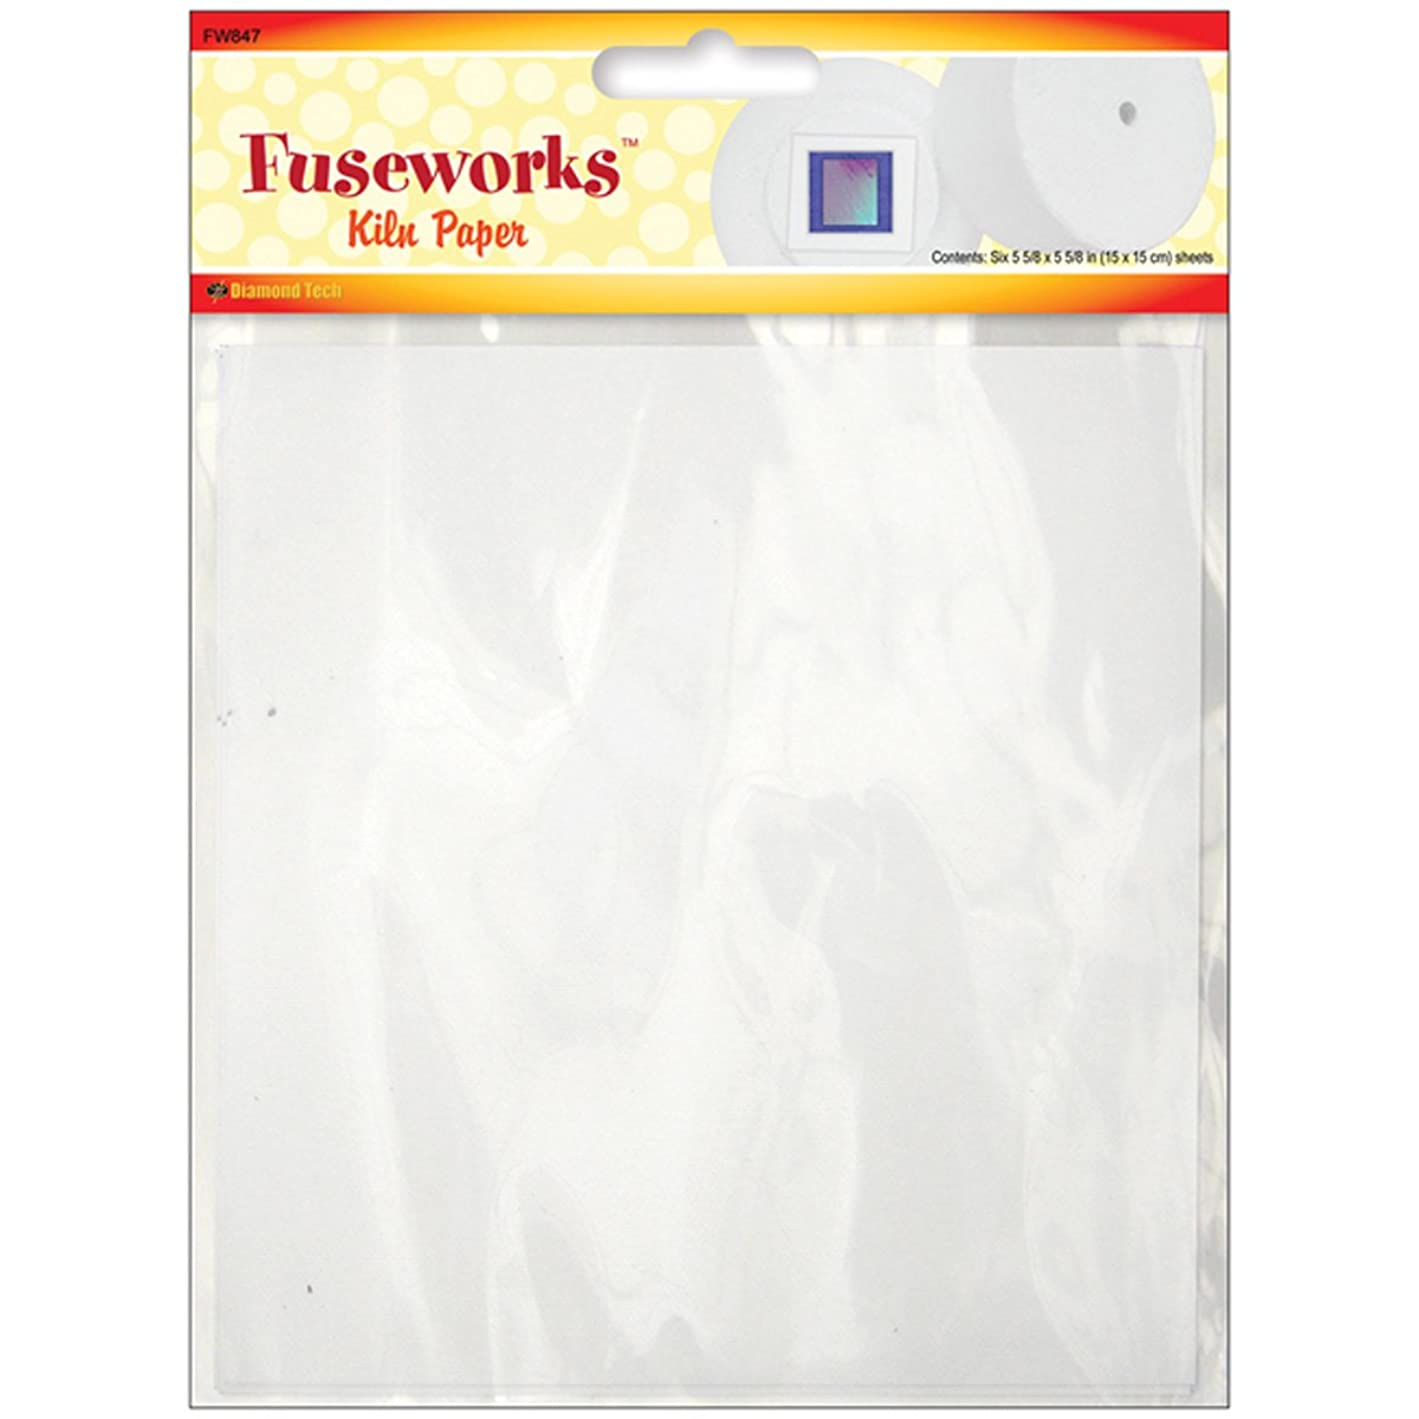 Fuseworks Kiln Paper, Pack of 4 Sheets t83696431528535